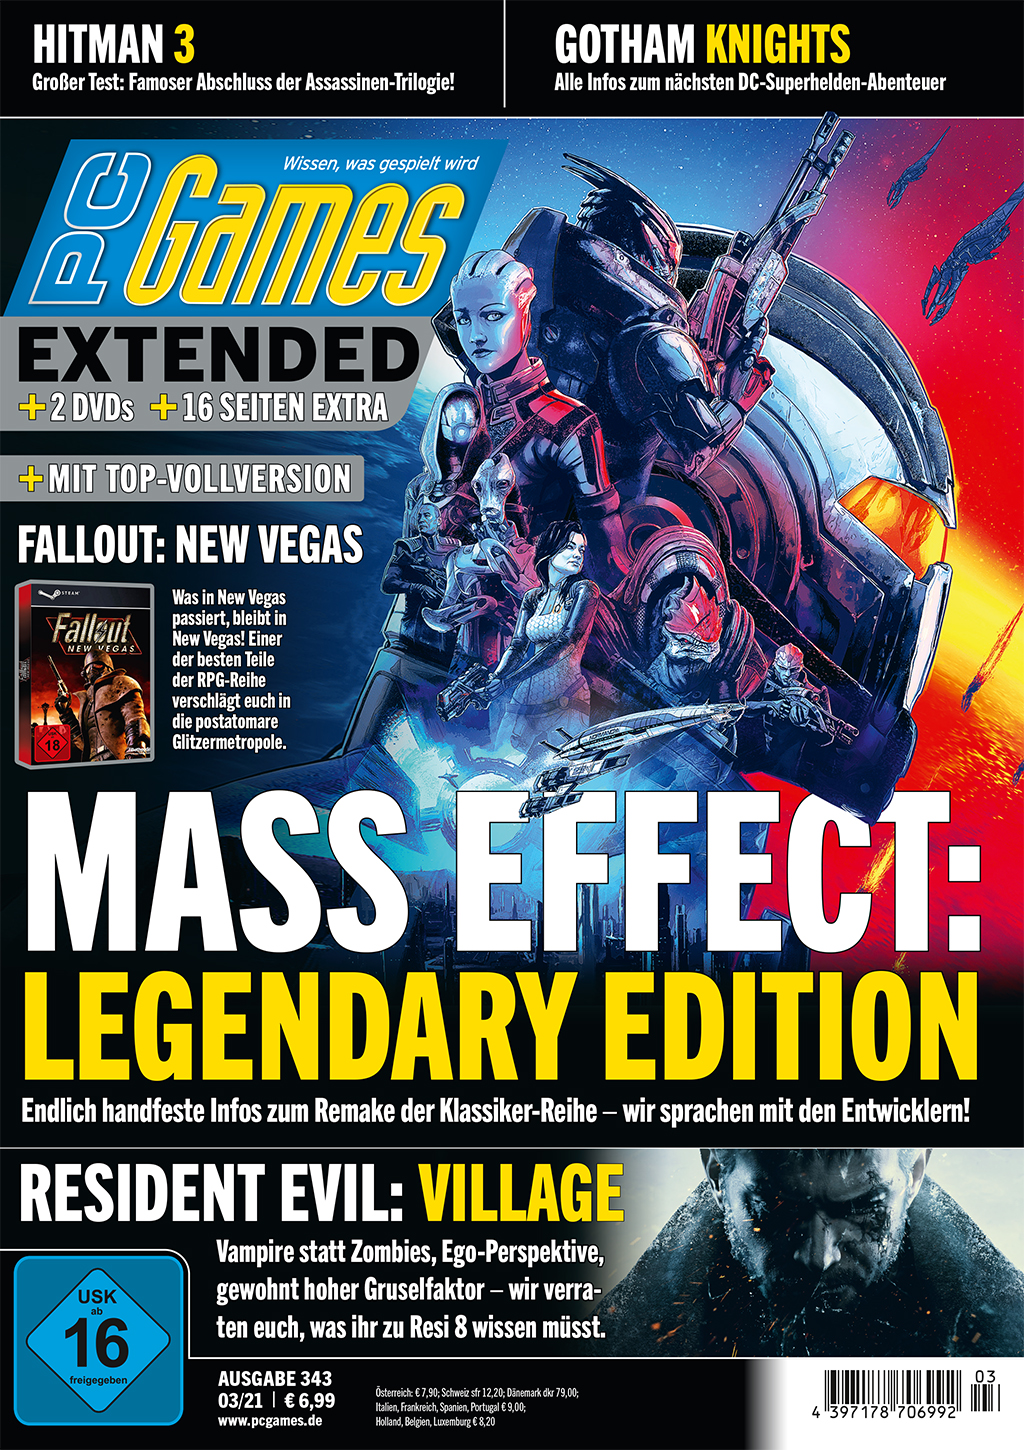 PC Games 03/21 with Mass Effect: L.E., Resident Evil 8 and much more. m.